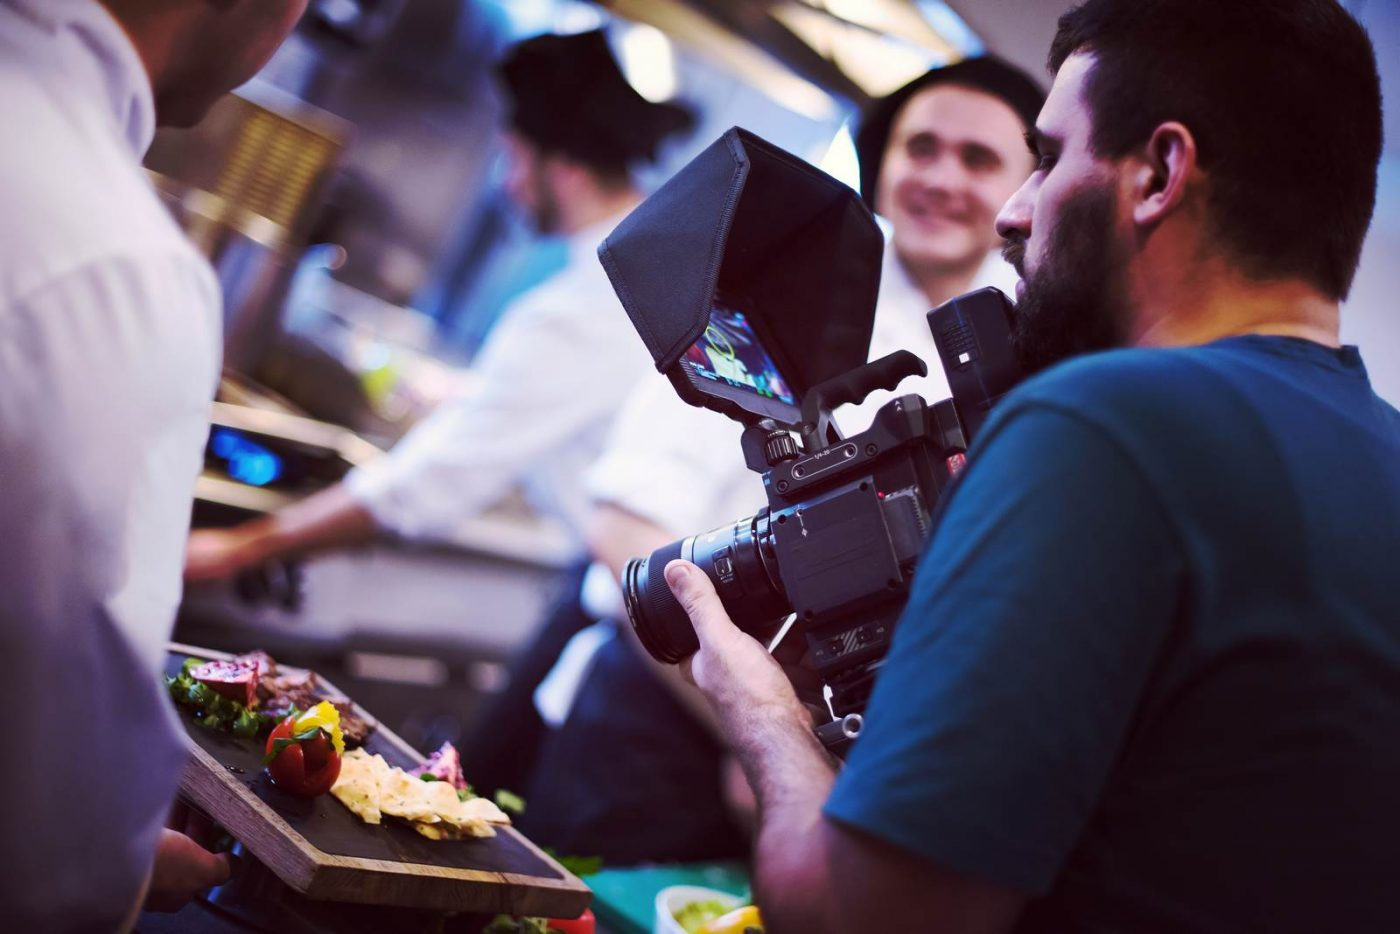 commercial videography team shoots video in St. Petersburg